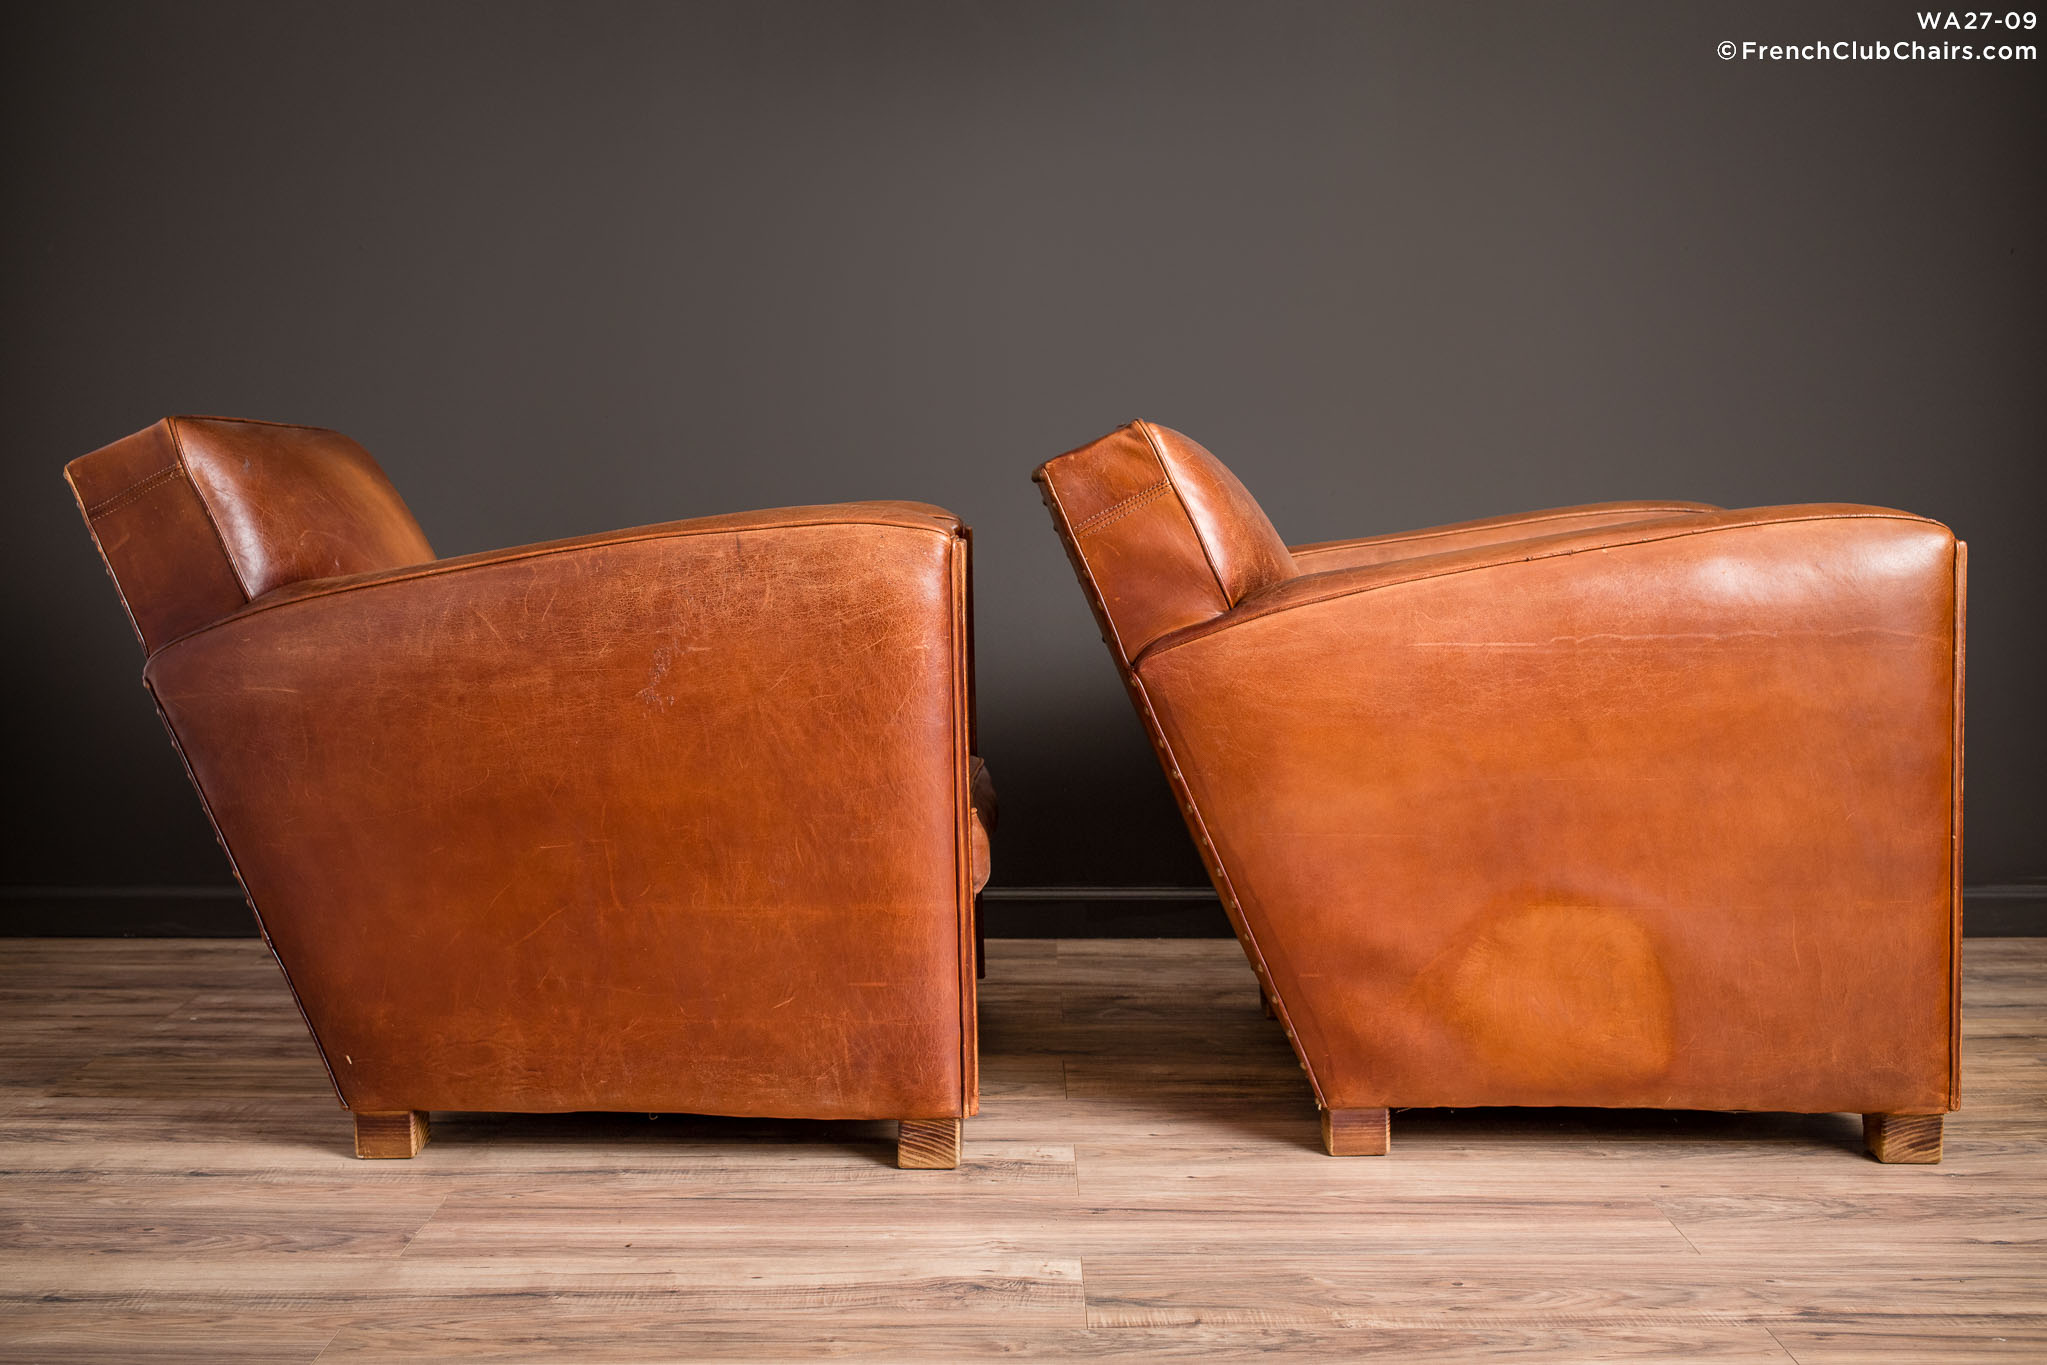 WA_27-09_Christophe_Paquebot_Pair_R_3RT-v01-williams-antiks-leather-french-club-chair-wa_fcccom